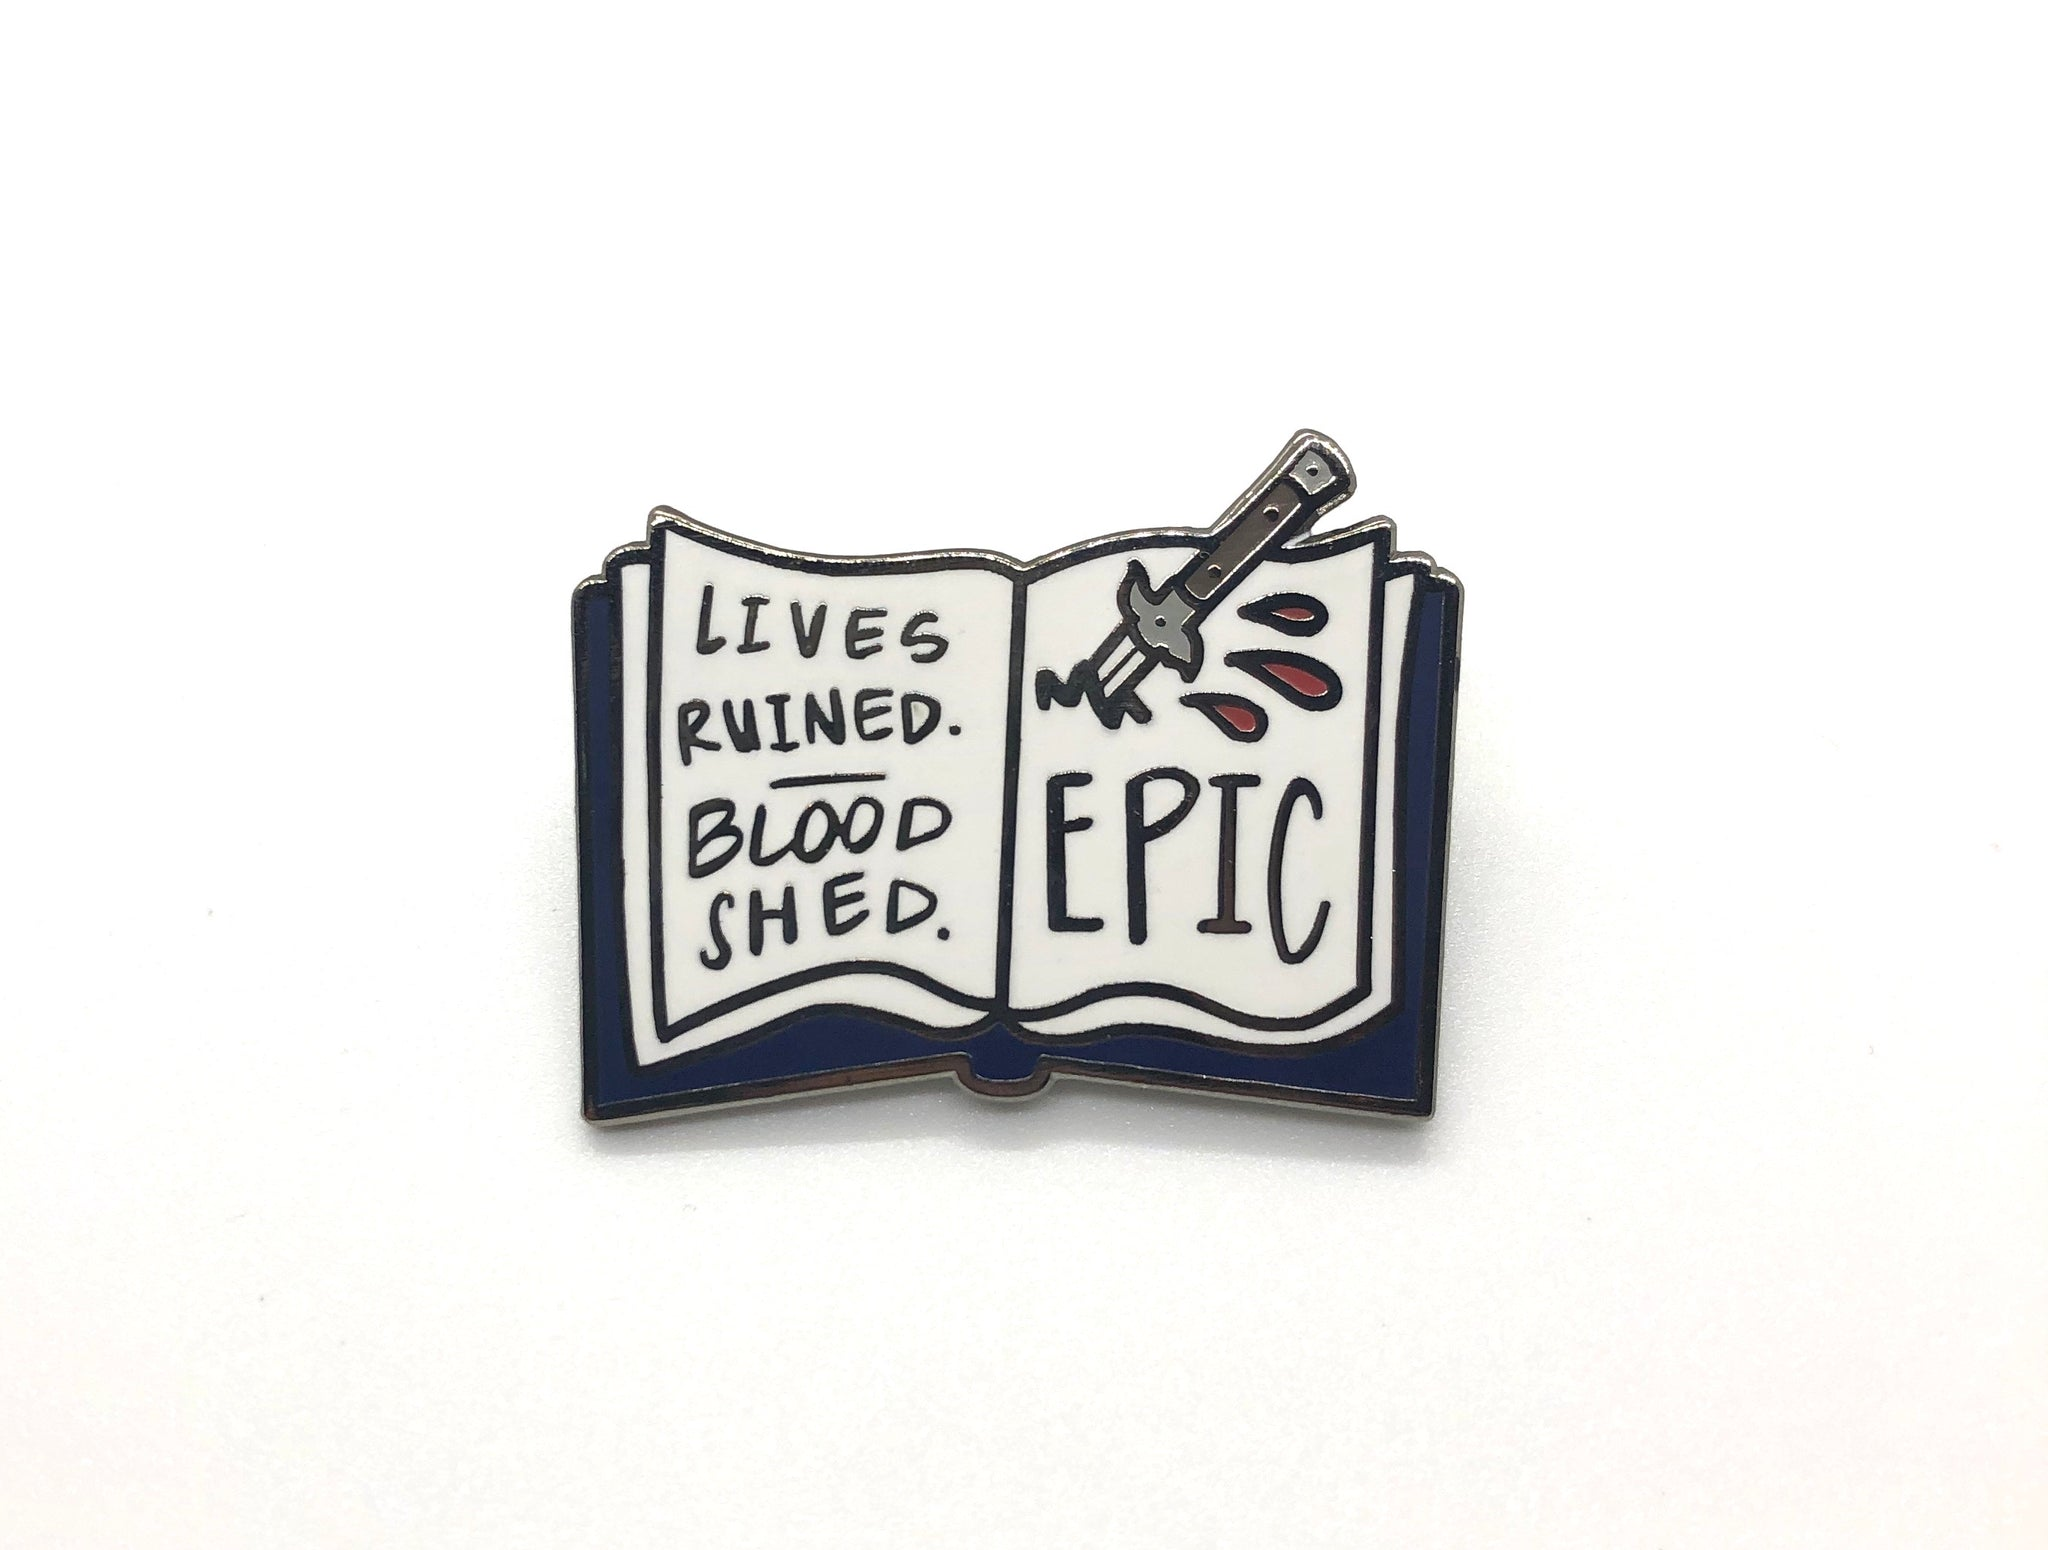 """Our Story is Epic"" - Veronica Mars inspired enamel pin"